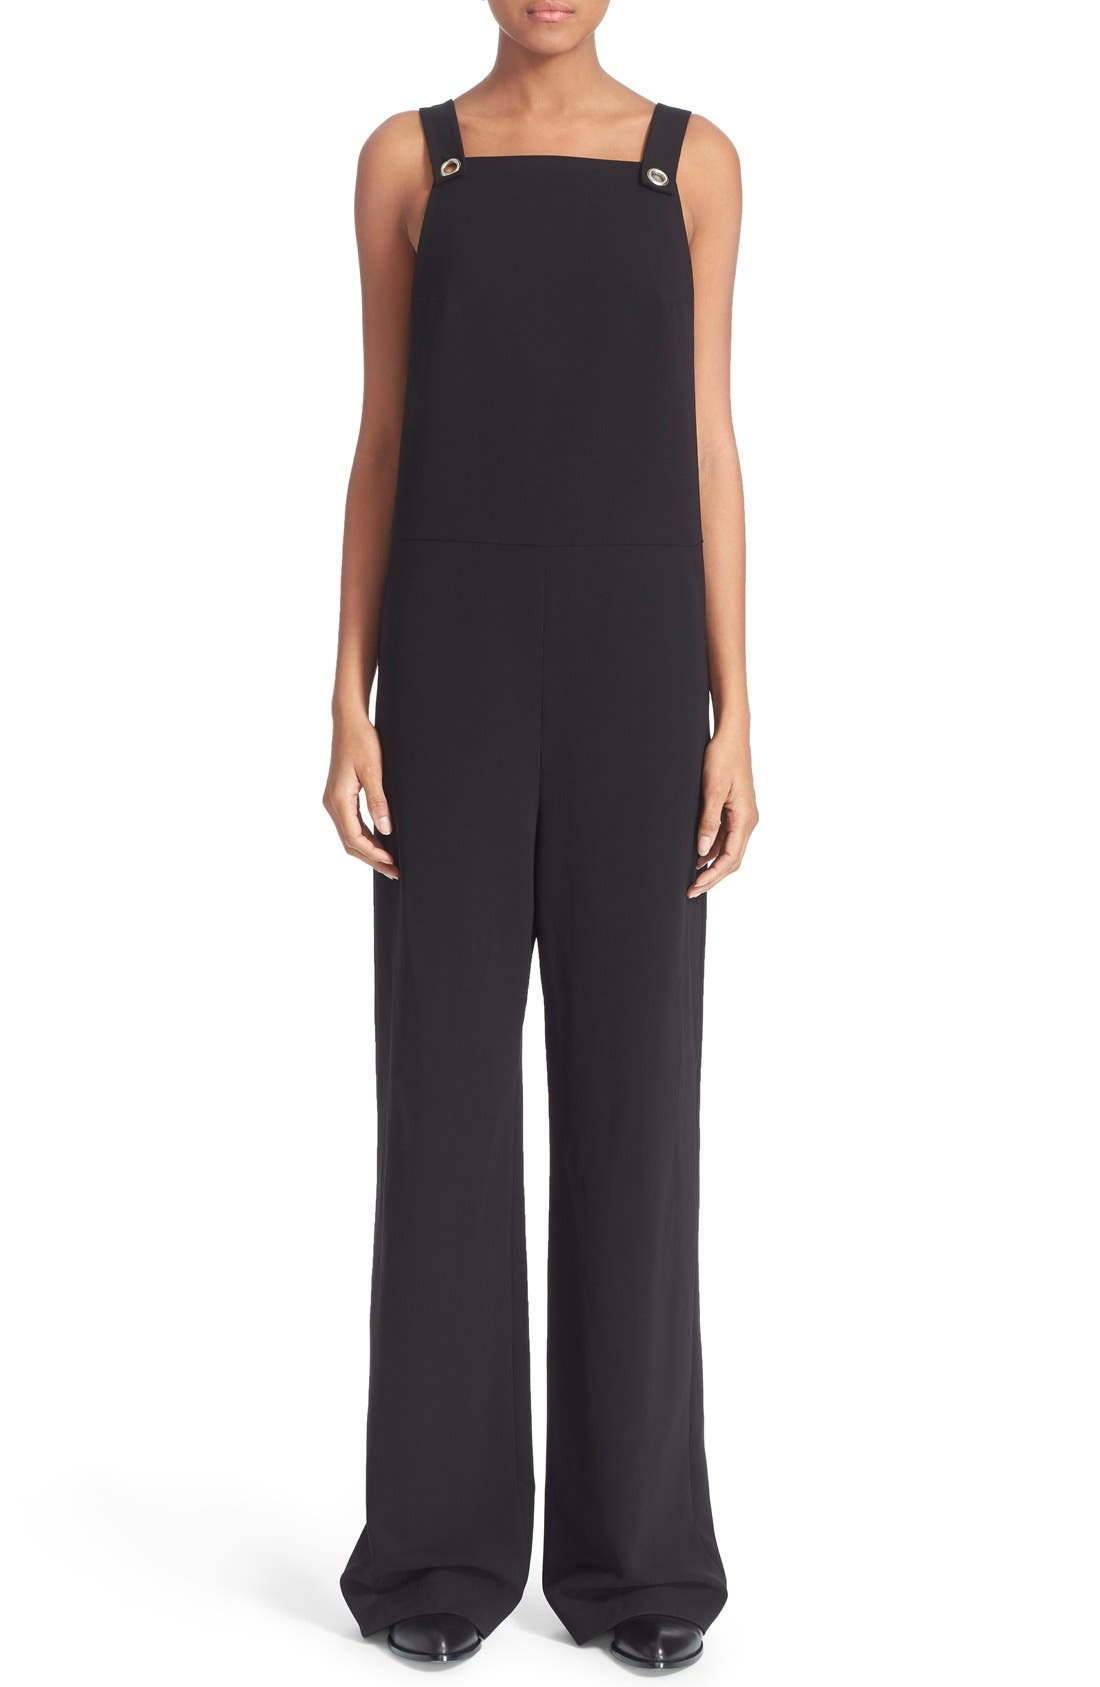 Main Image - T by Alexander Wang Twill Jumpsuit with Strap Detail